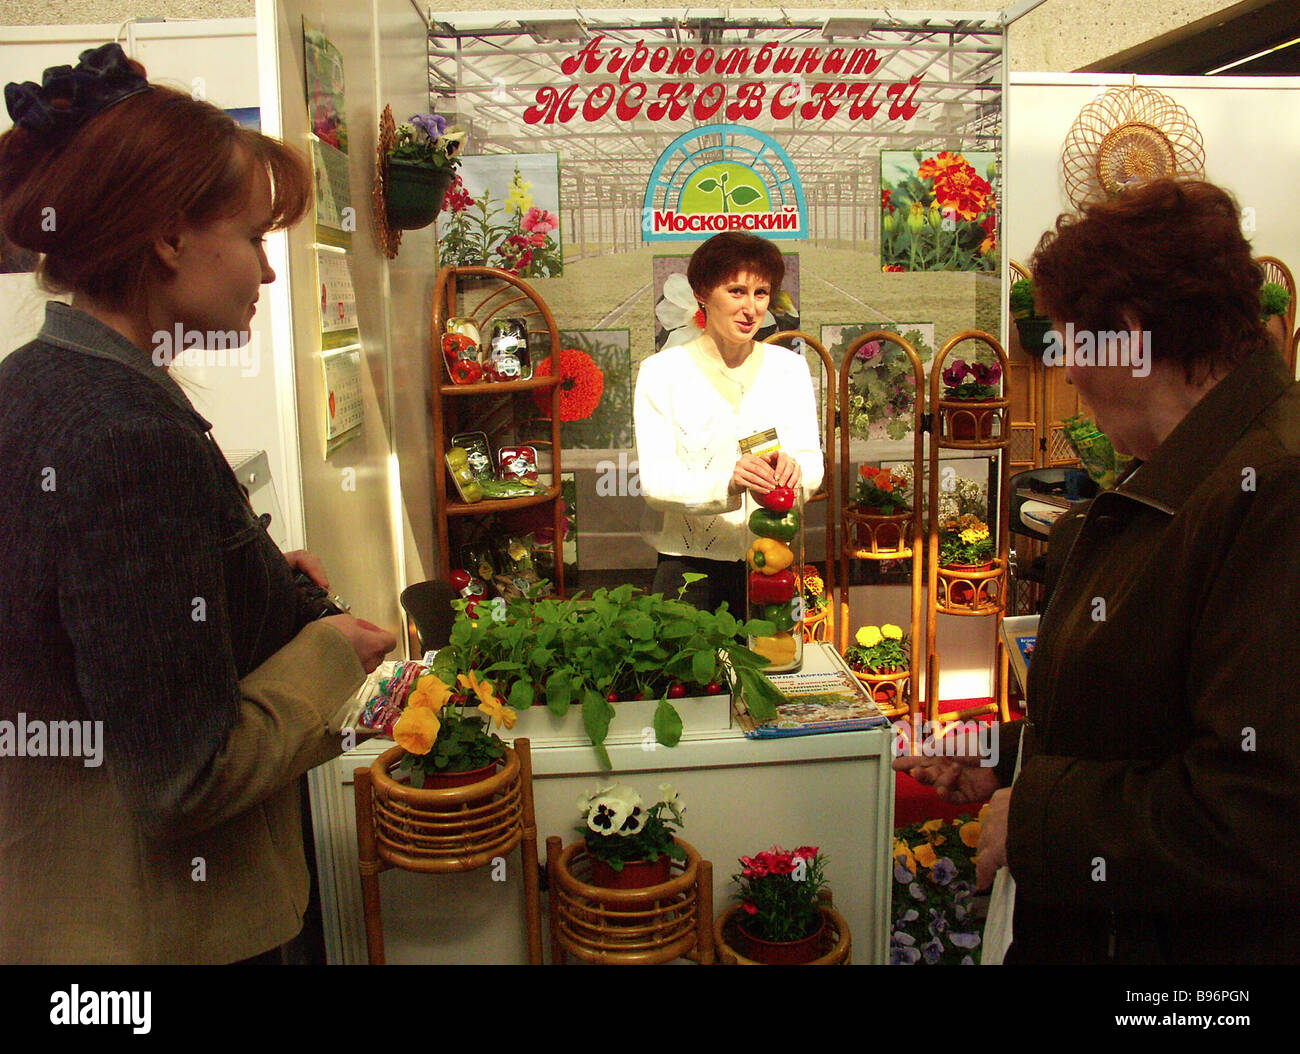 At the exposition All Russia Trademark 21st Century Quality - Stock Image